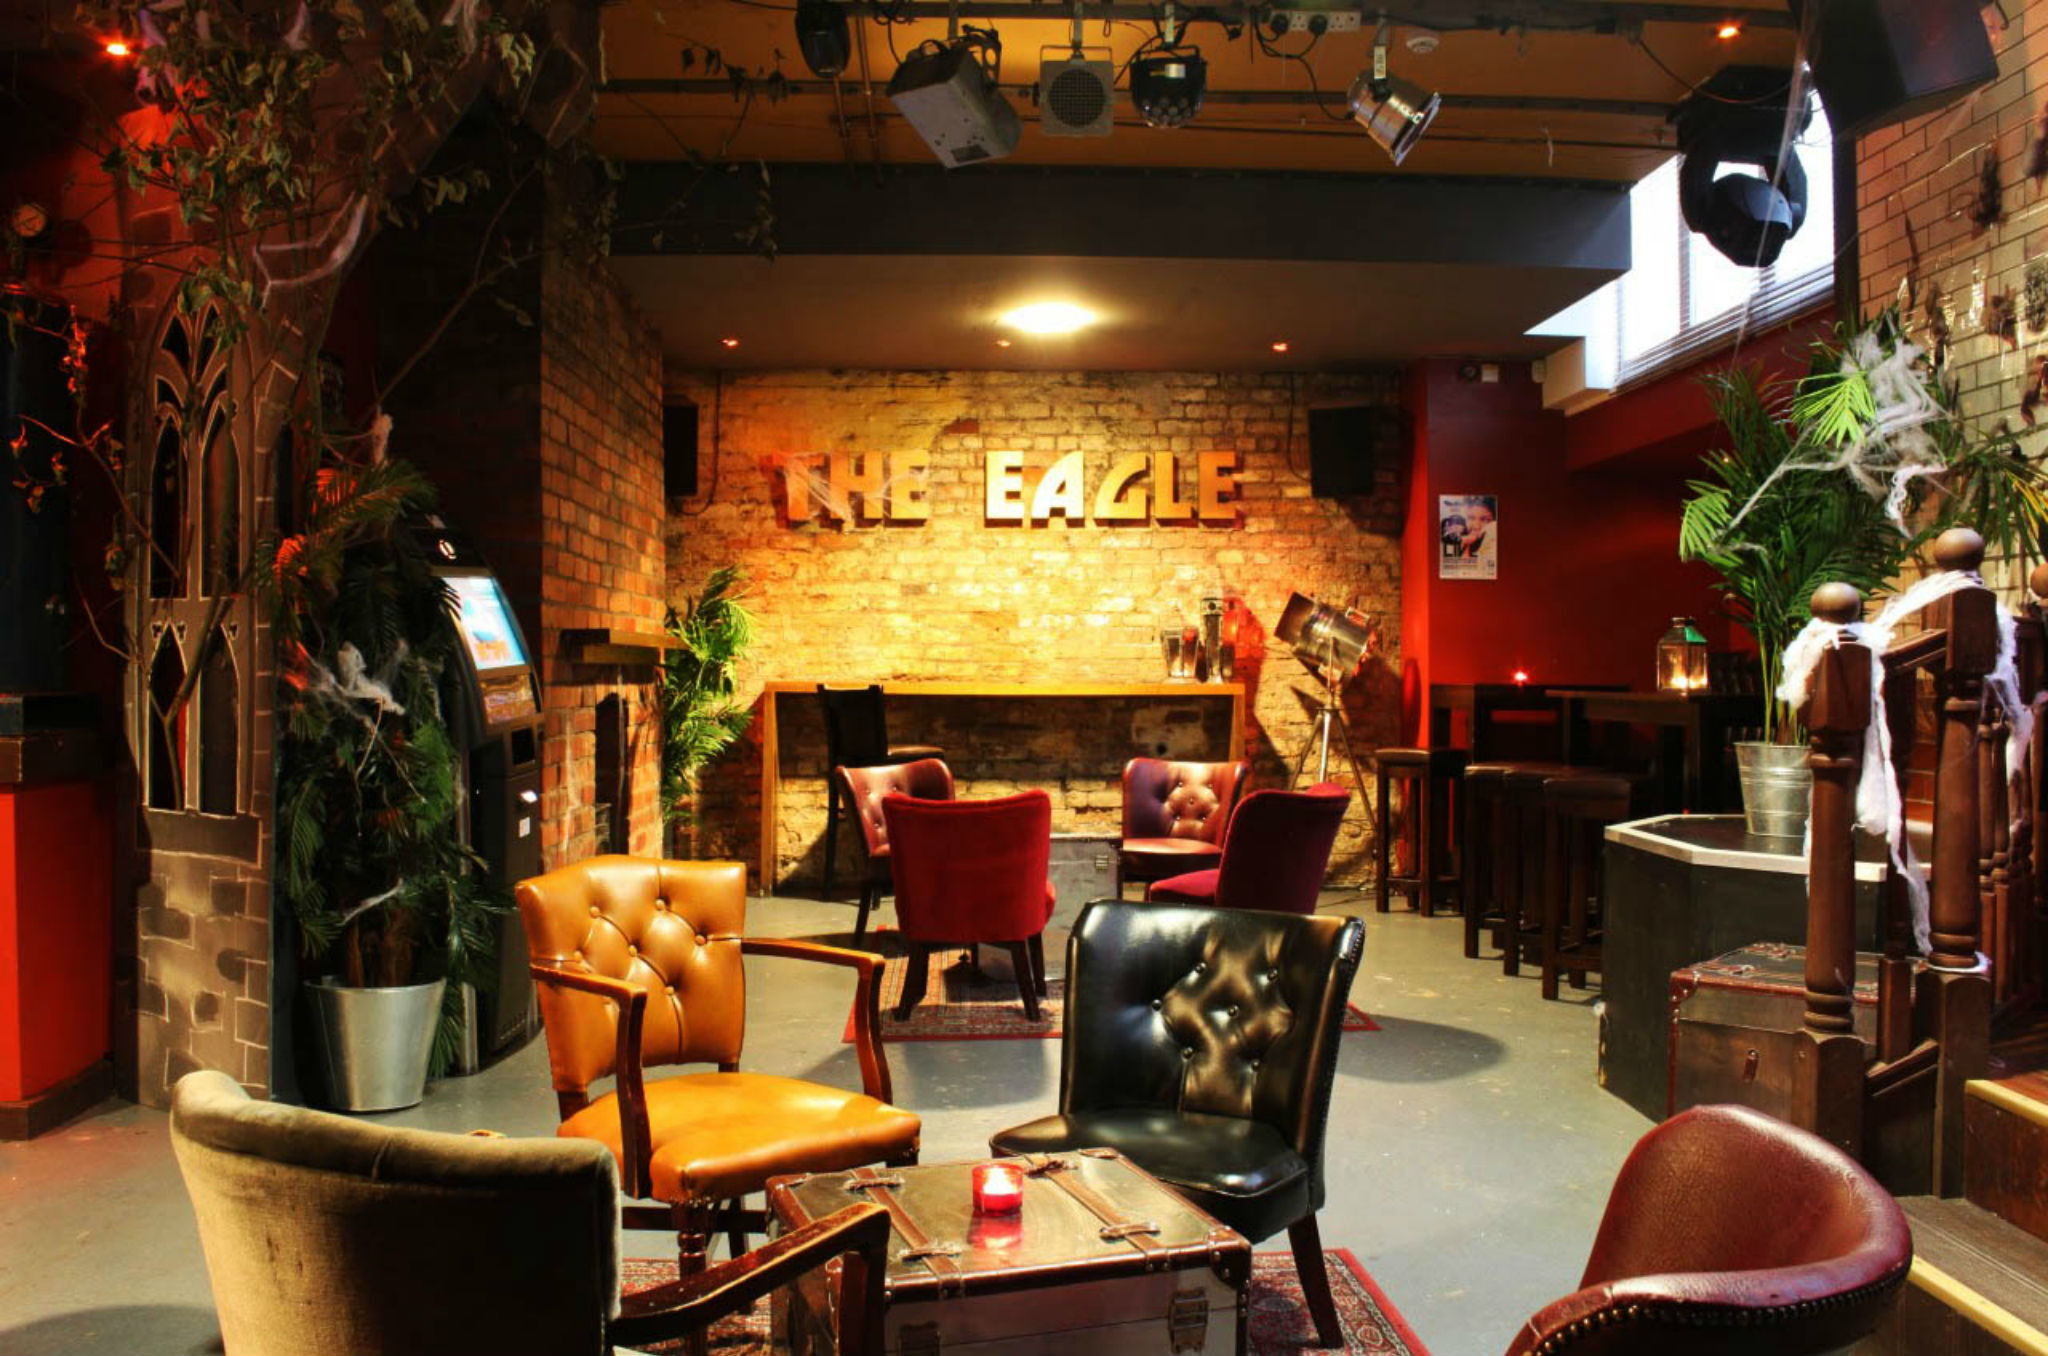 The Eagle, Manchester, Gay Village